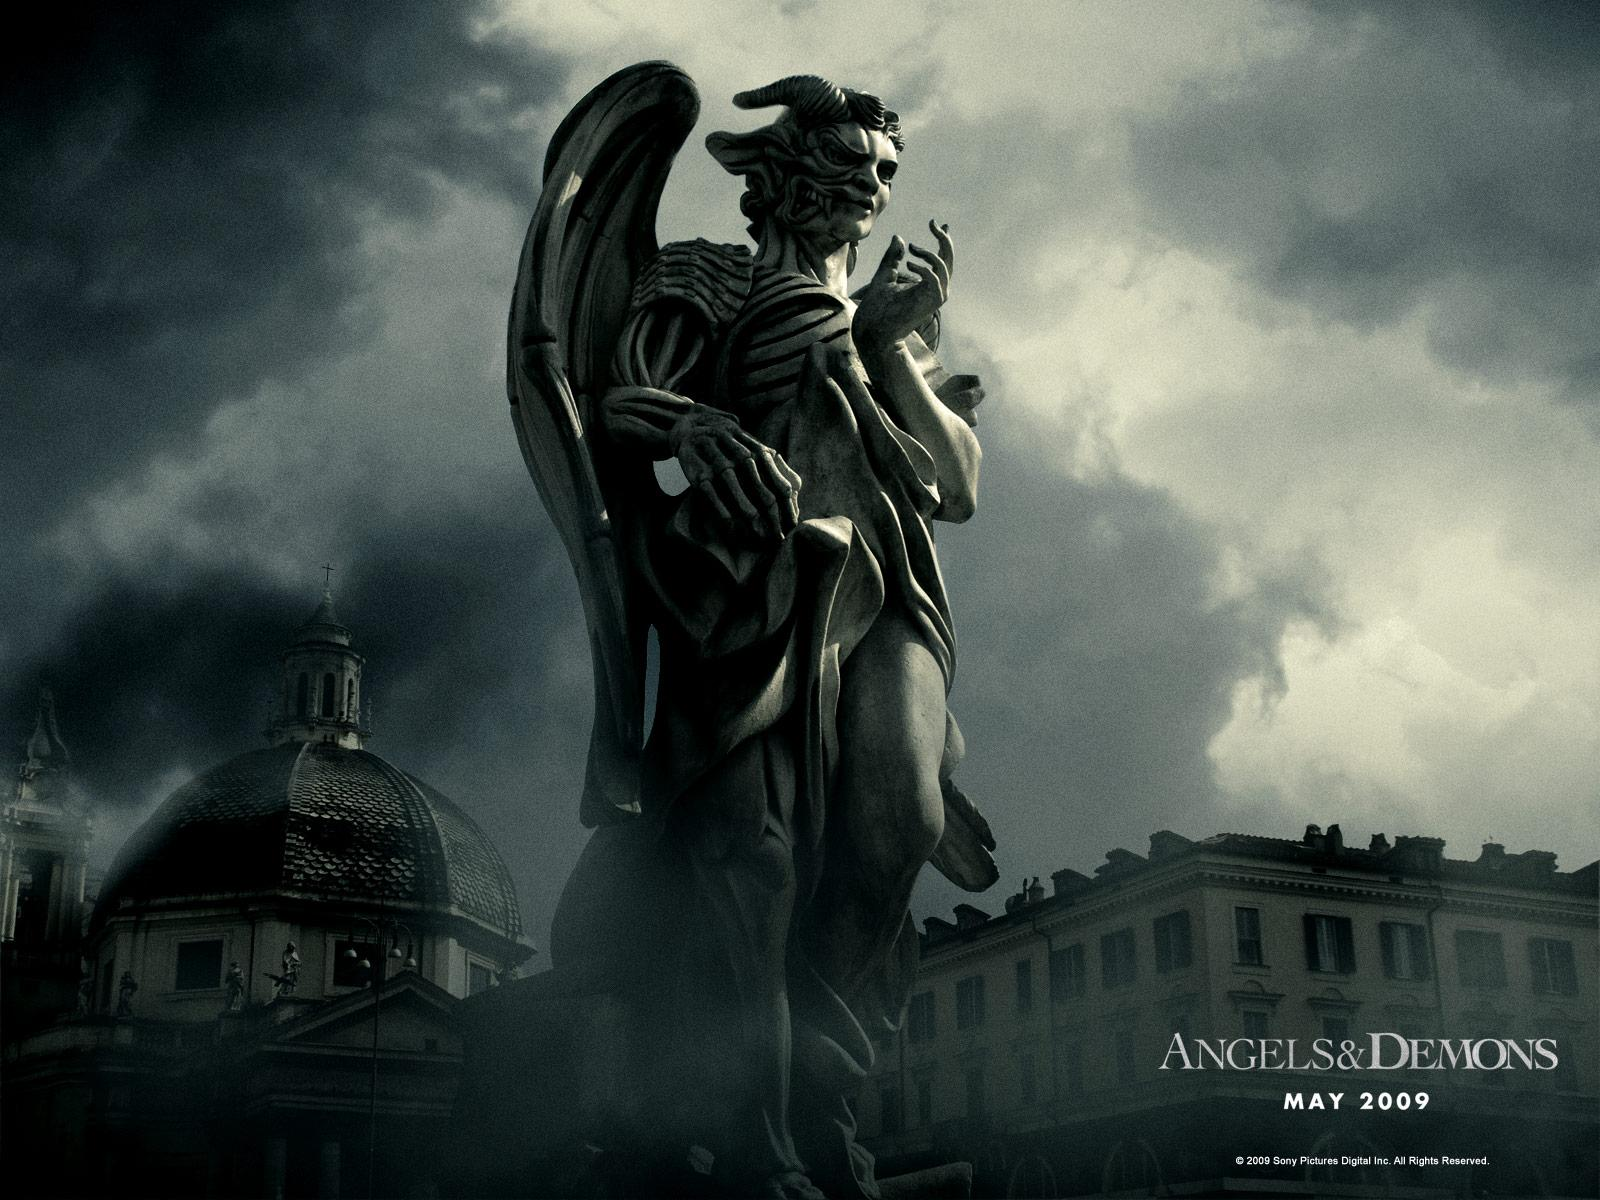 Angels_and_Demons_Wallpaper_1_1280.jpg (1600×1200)